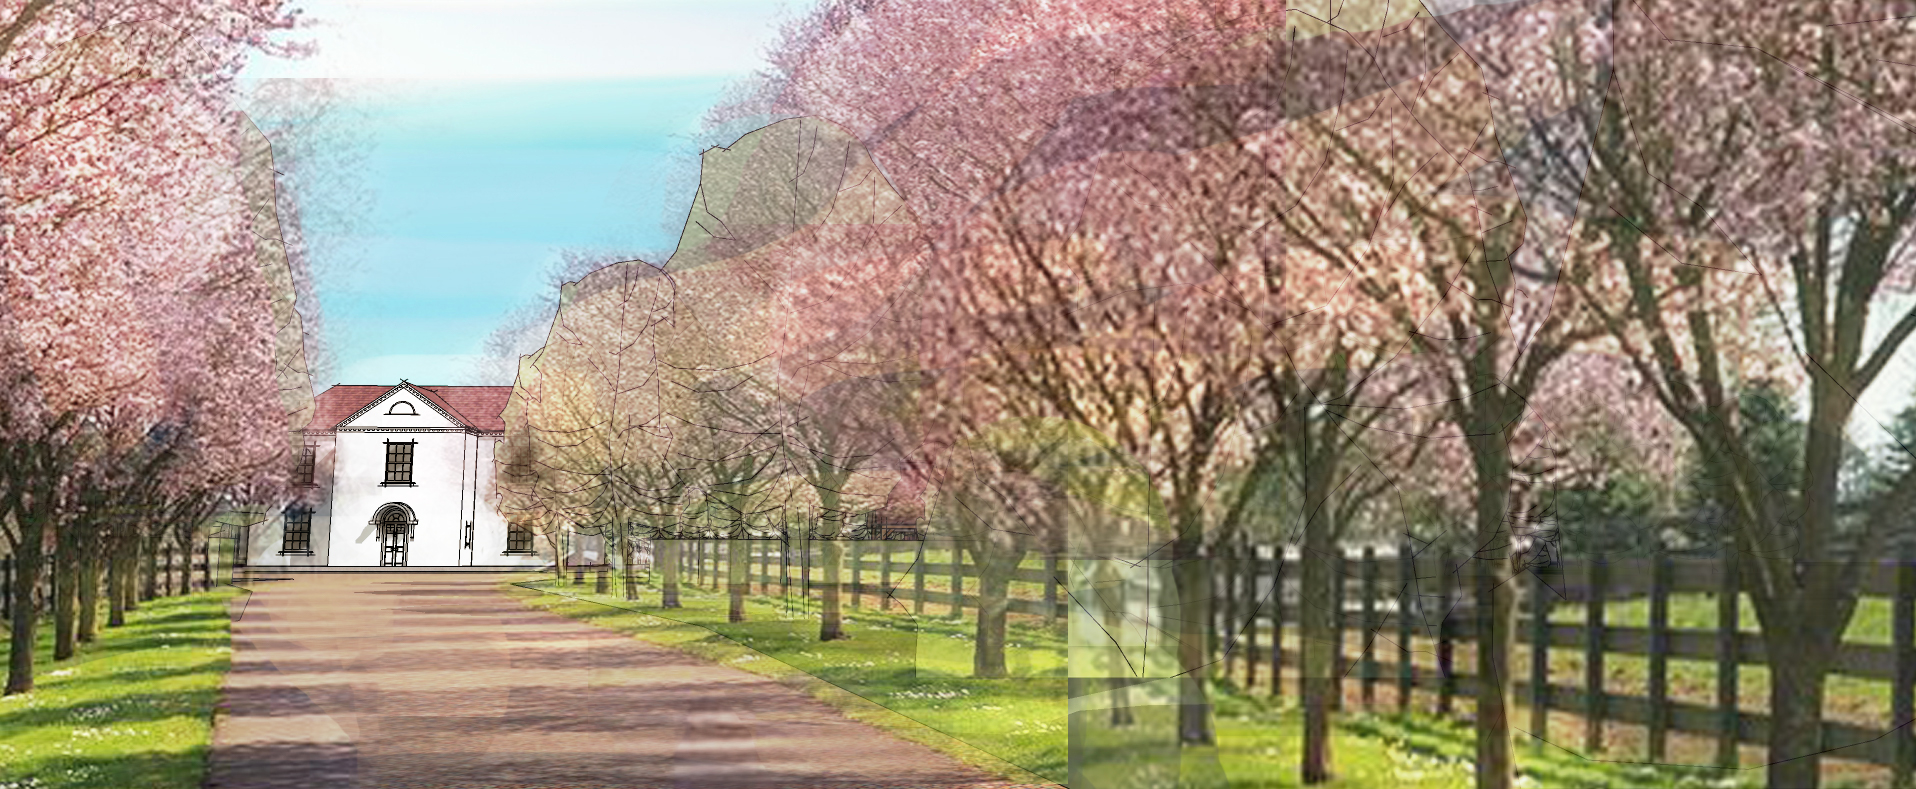 3D Visualisation or architectural project alongside cherry trees